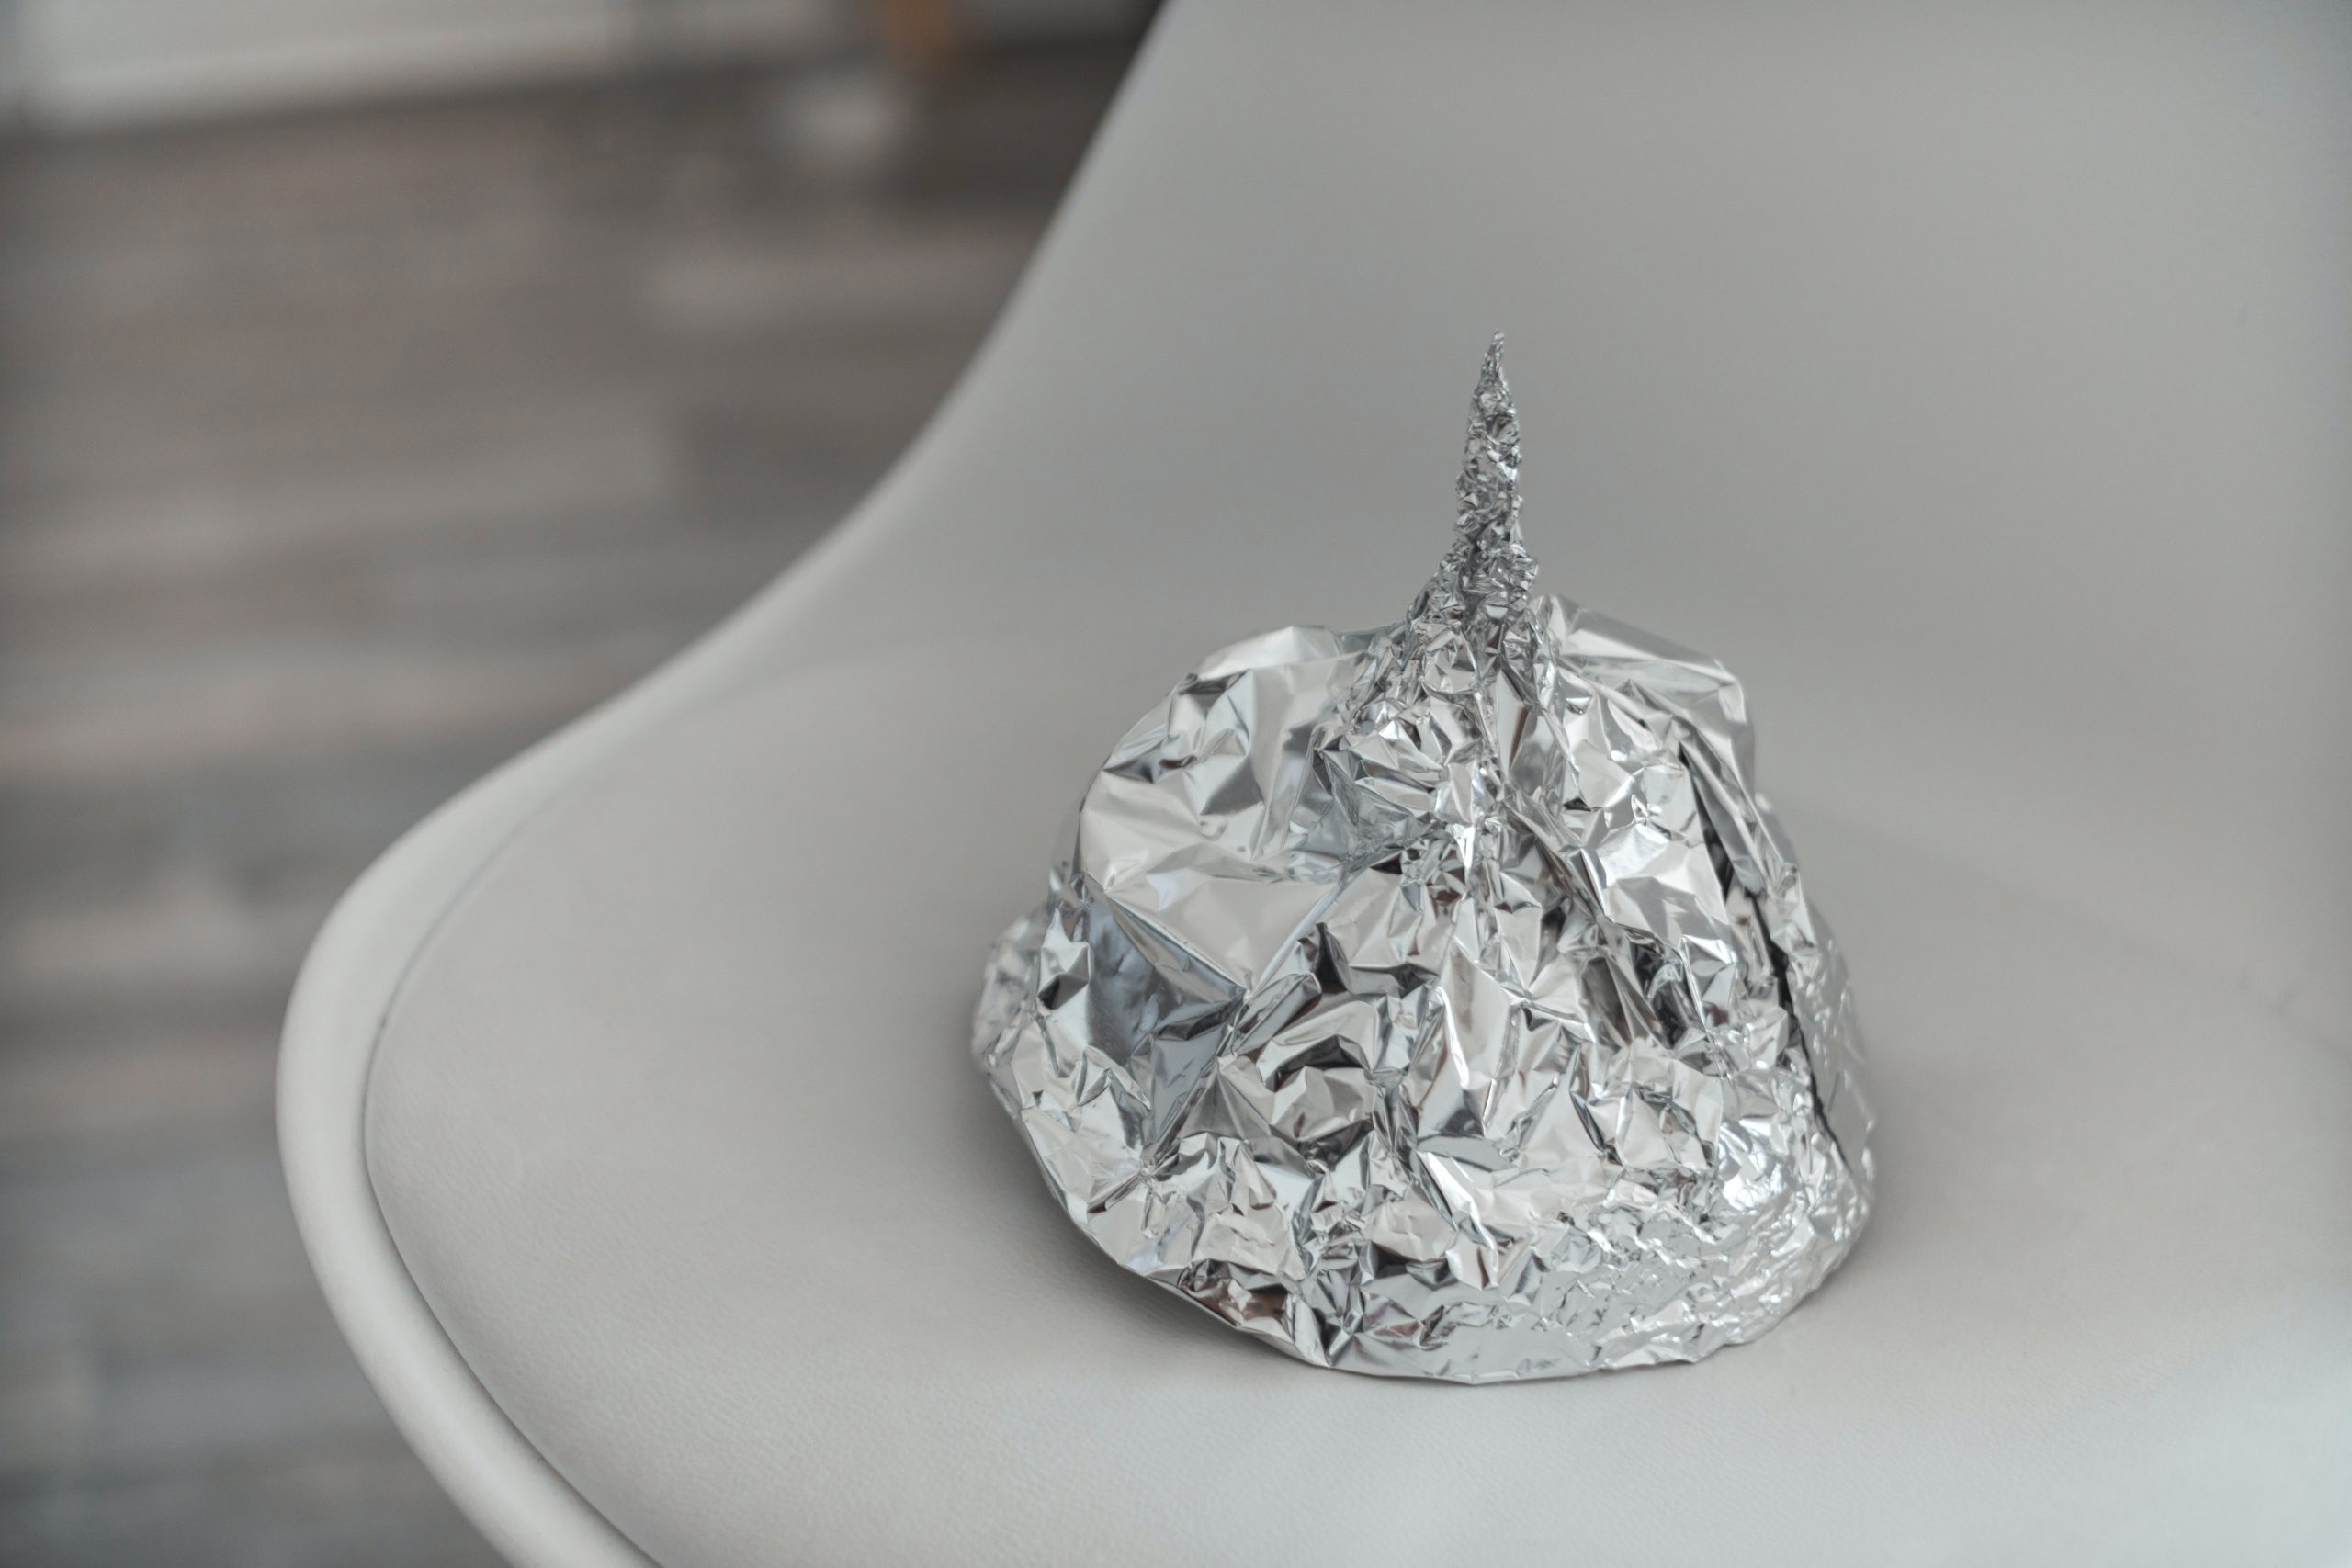 Tin foil hat on chair. Image by Tom Radetzki.